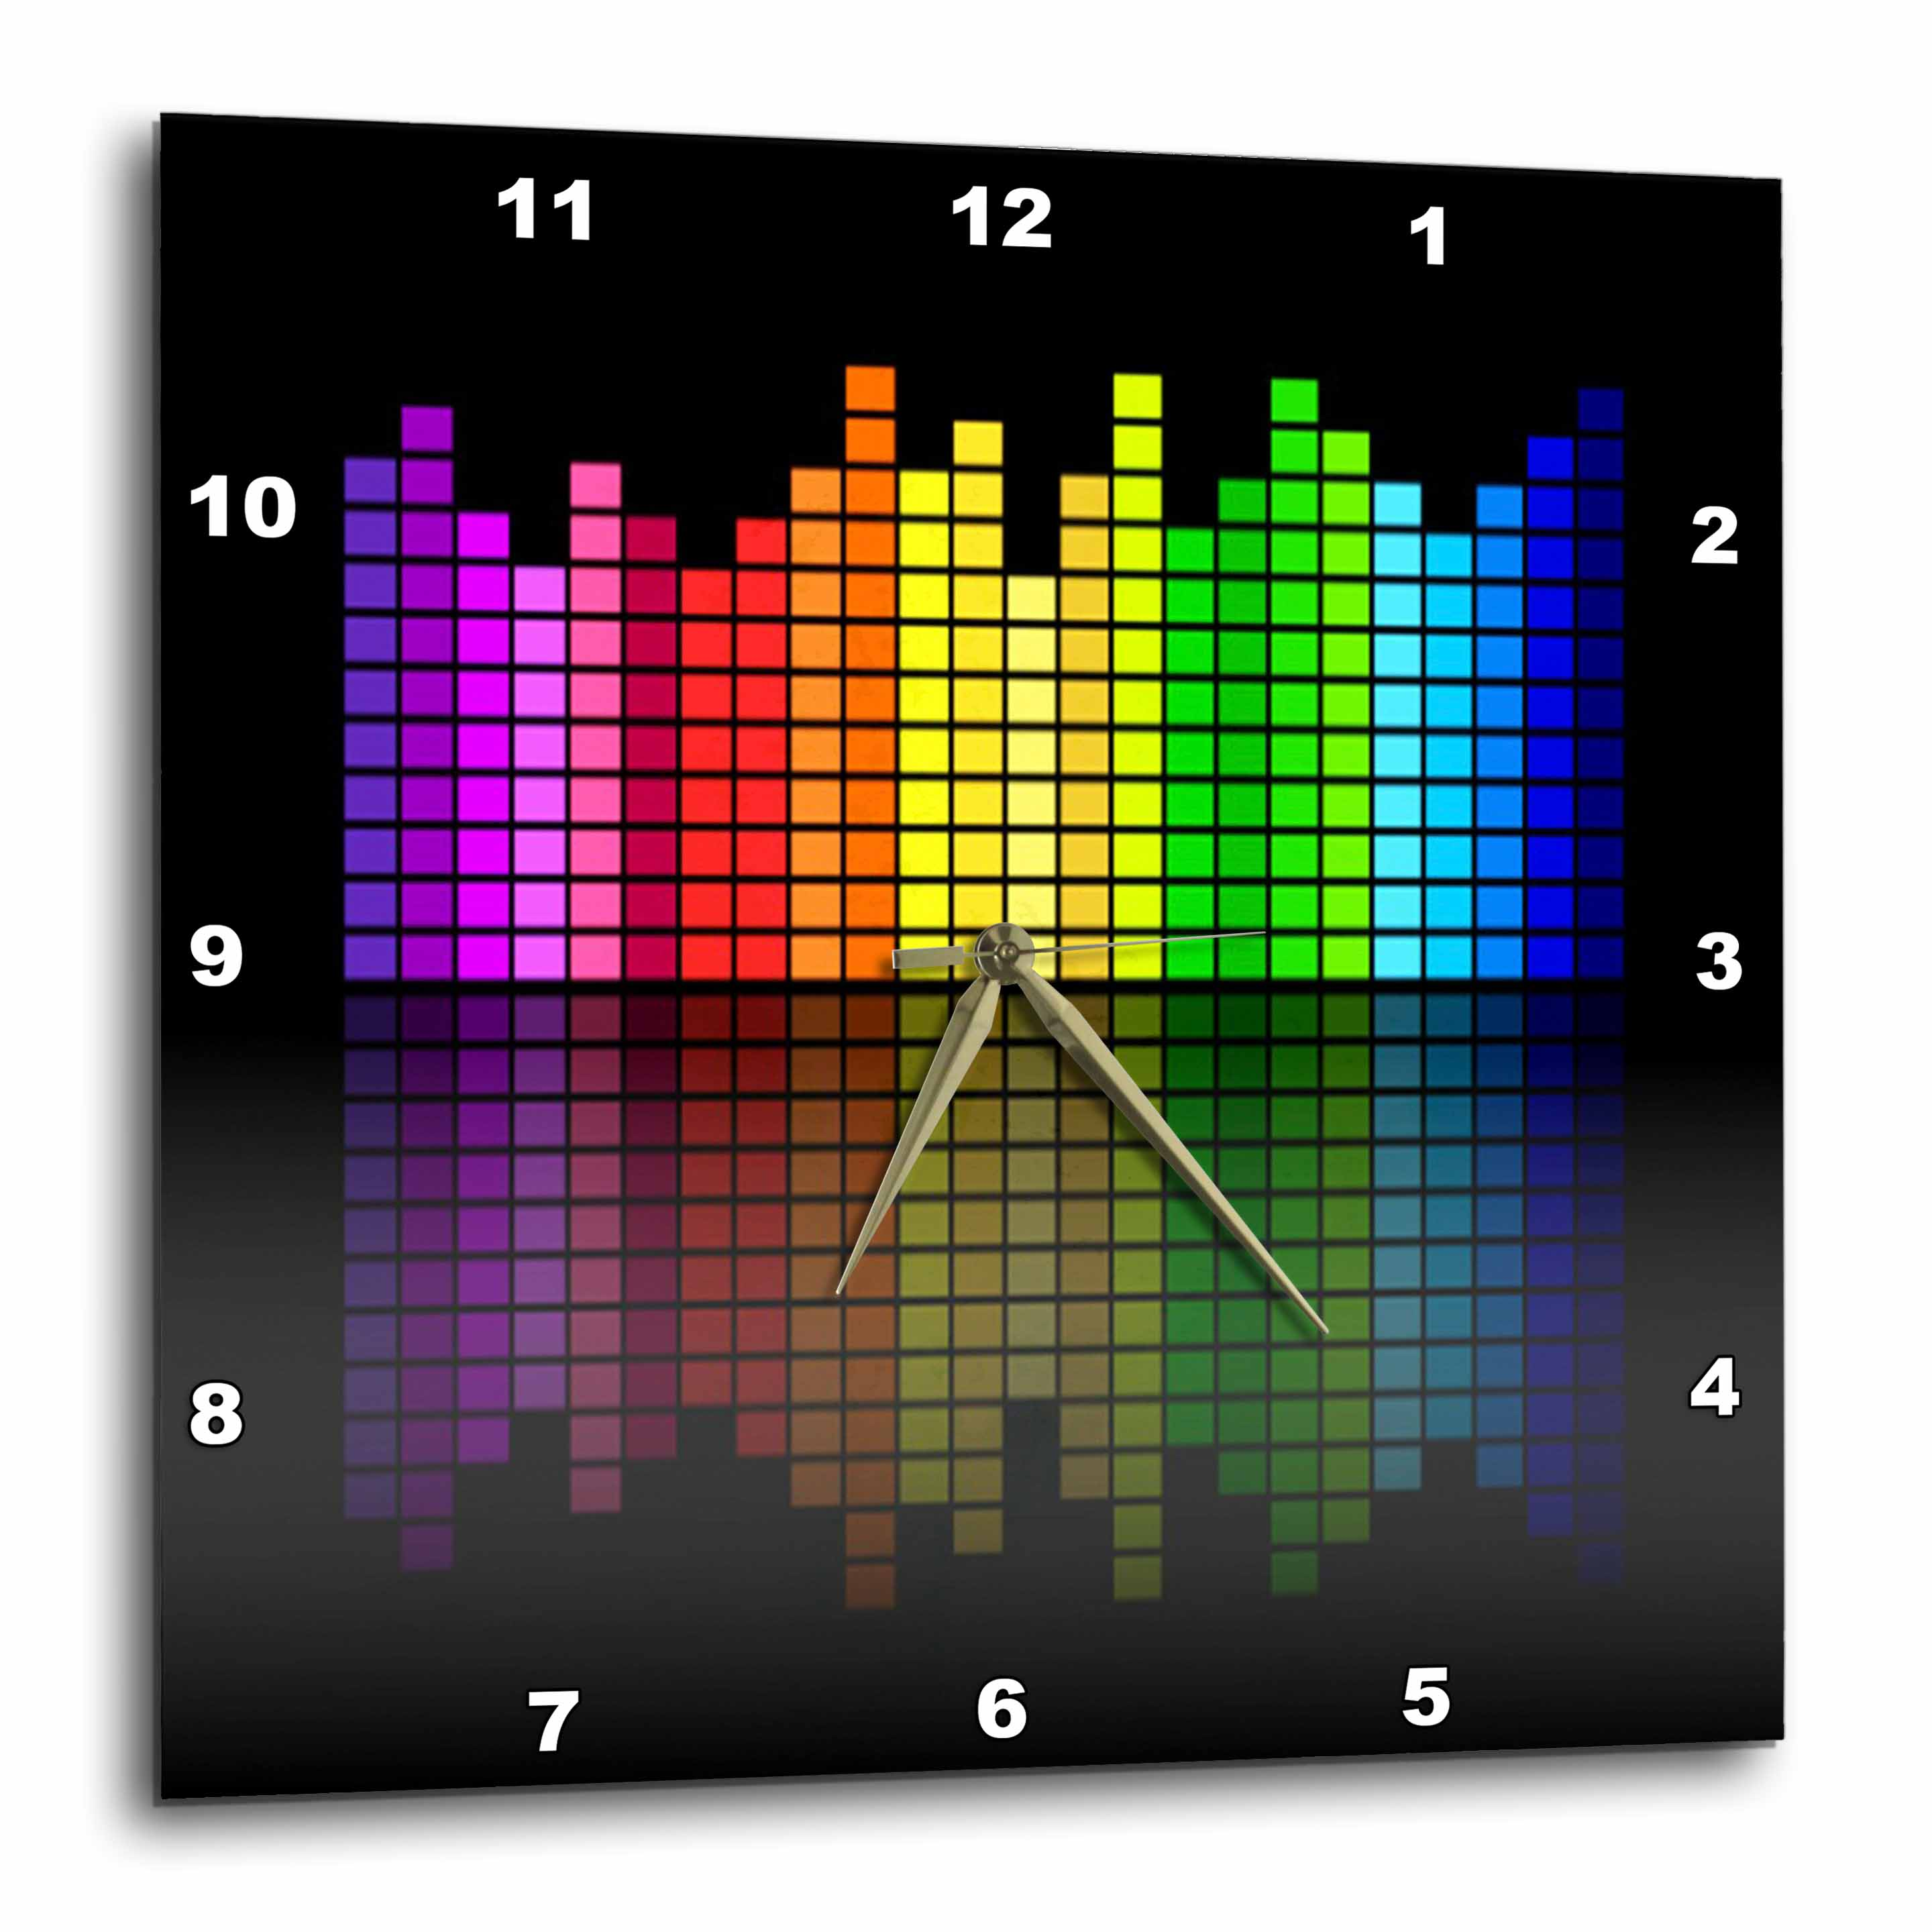 3dRose Pink Red Green Yellow Blue Music Equalizer On Black, Wall Clock, 13 by 13-inch by 3dRose